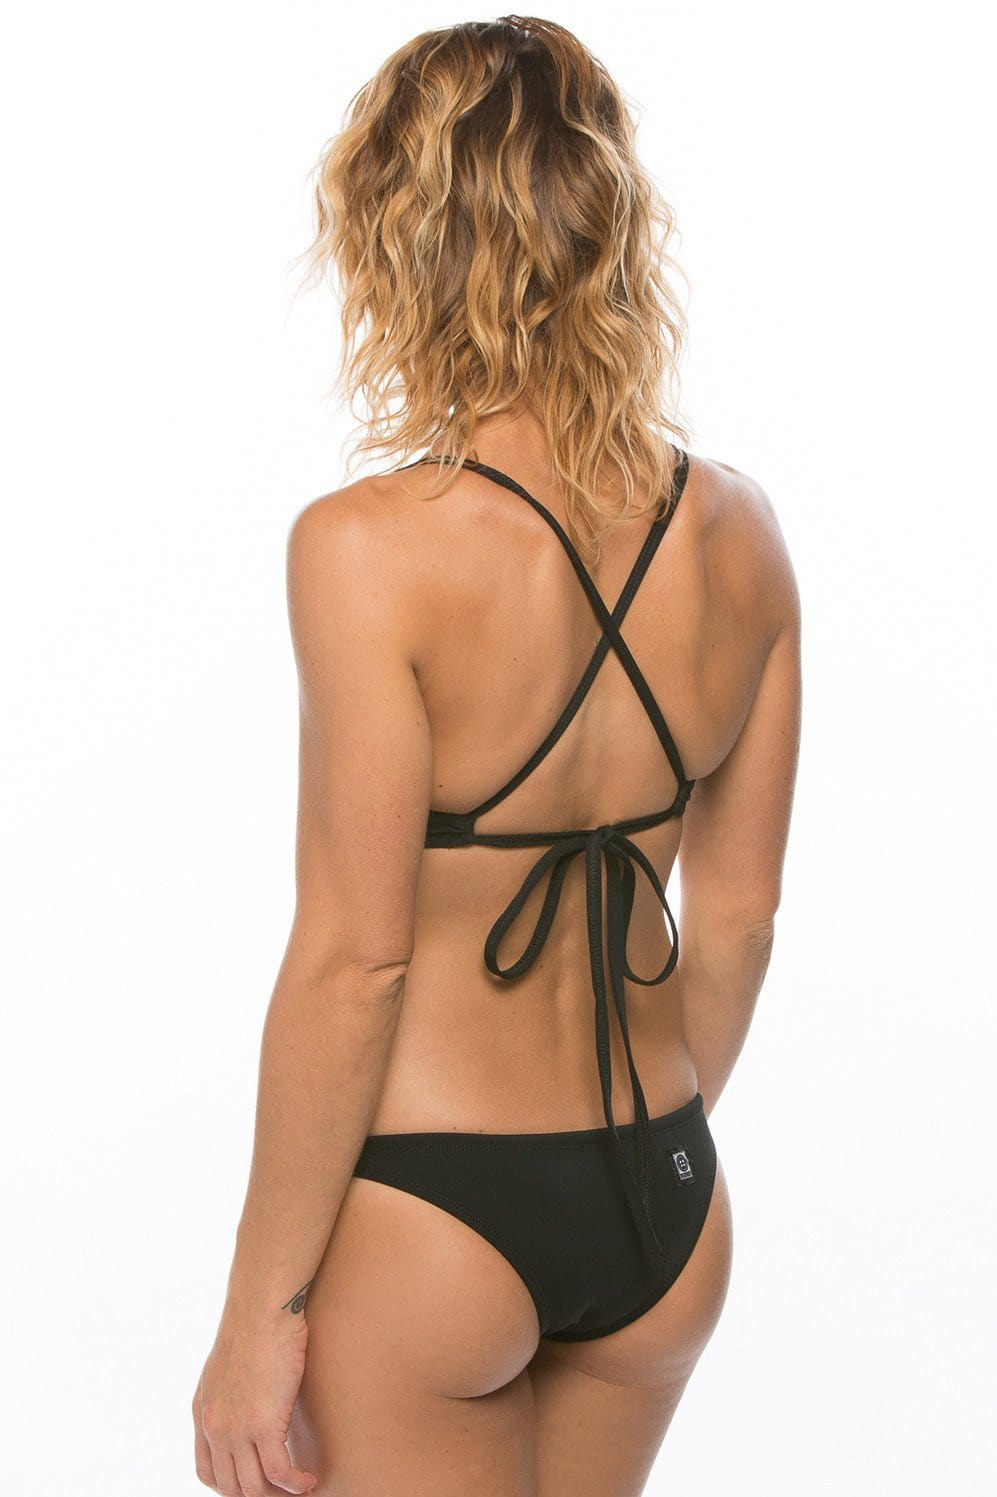 Europe Bikini Bottom - Black